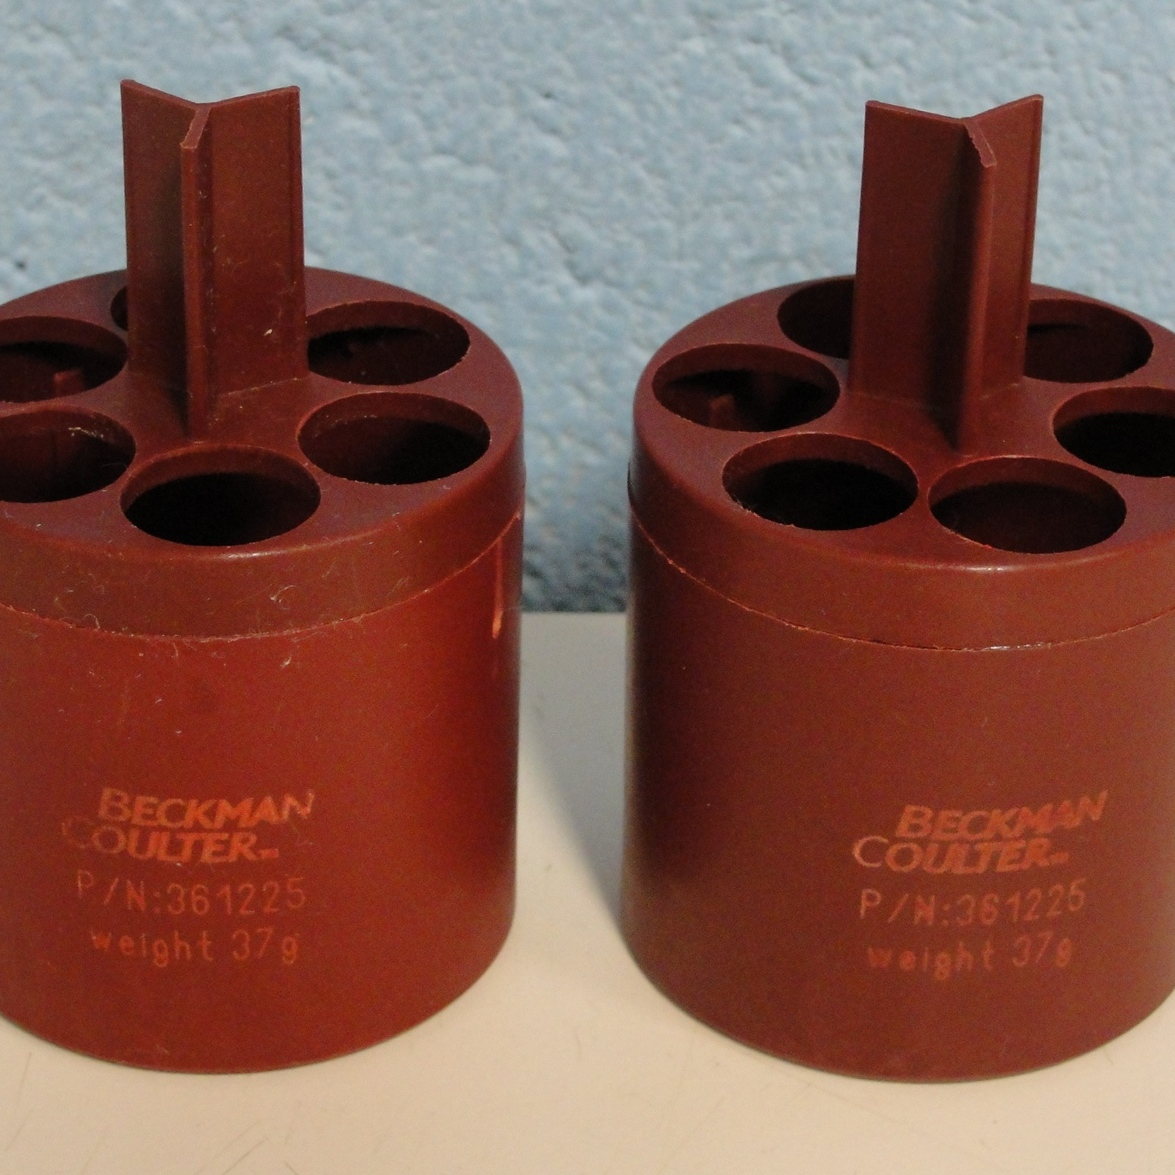 Beckman Coulter 16mm Round Bottom Adapters for S4180 Bucket Rotor Image